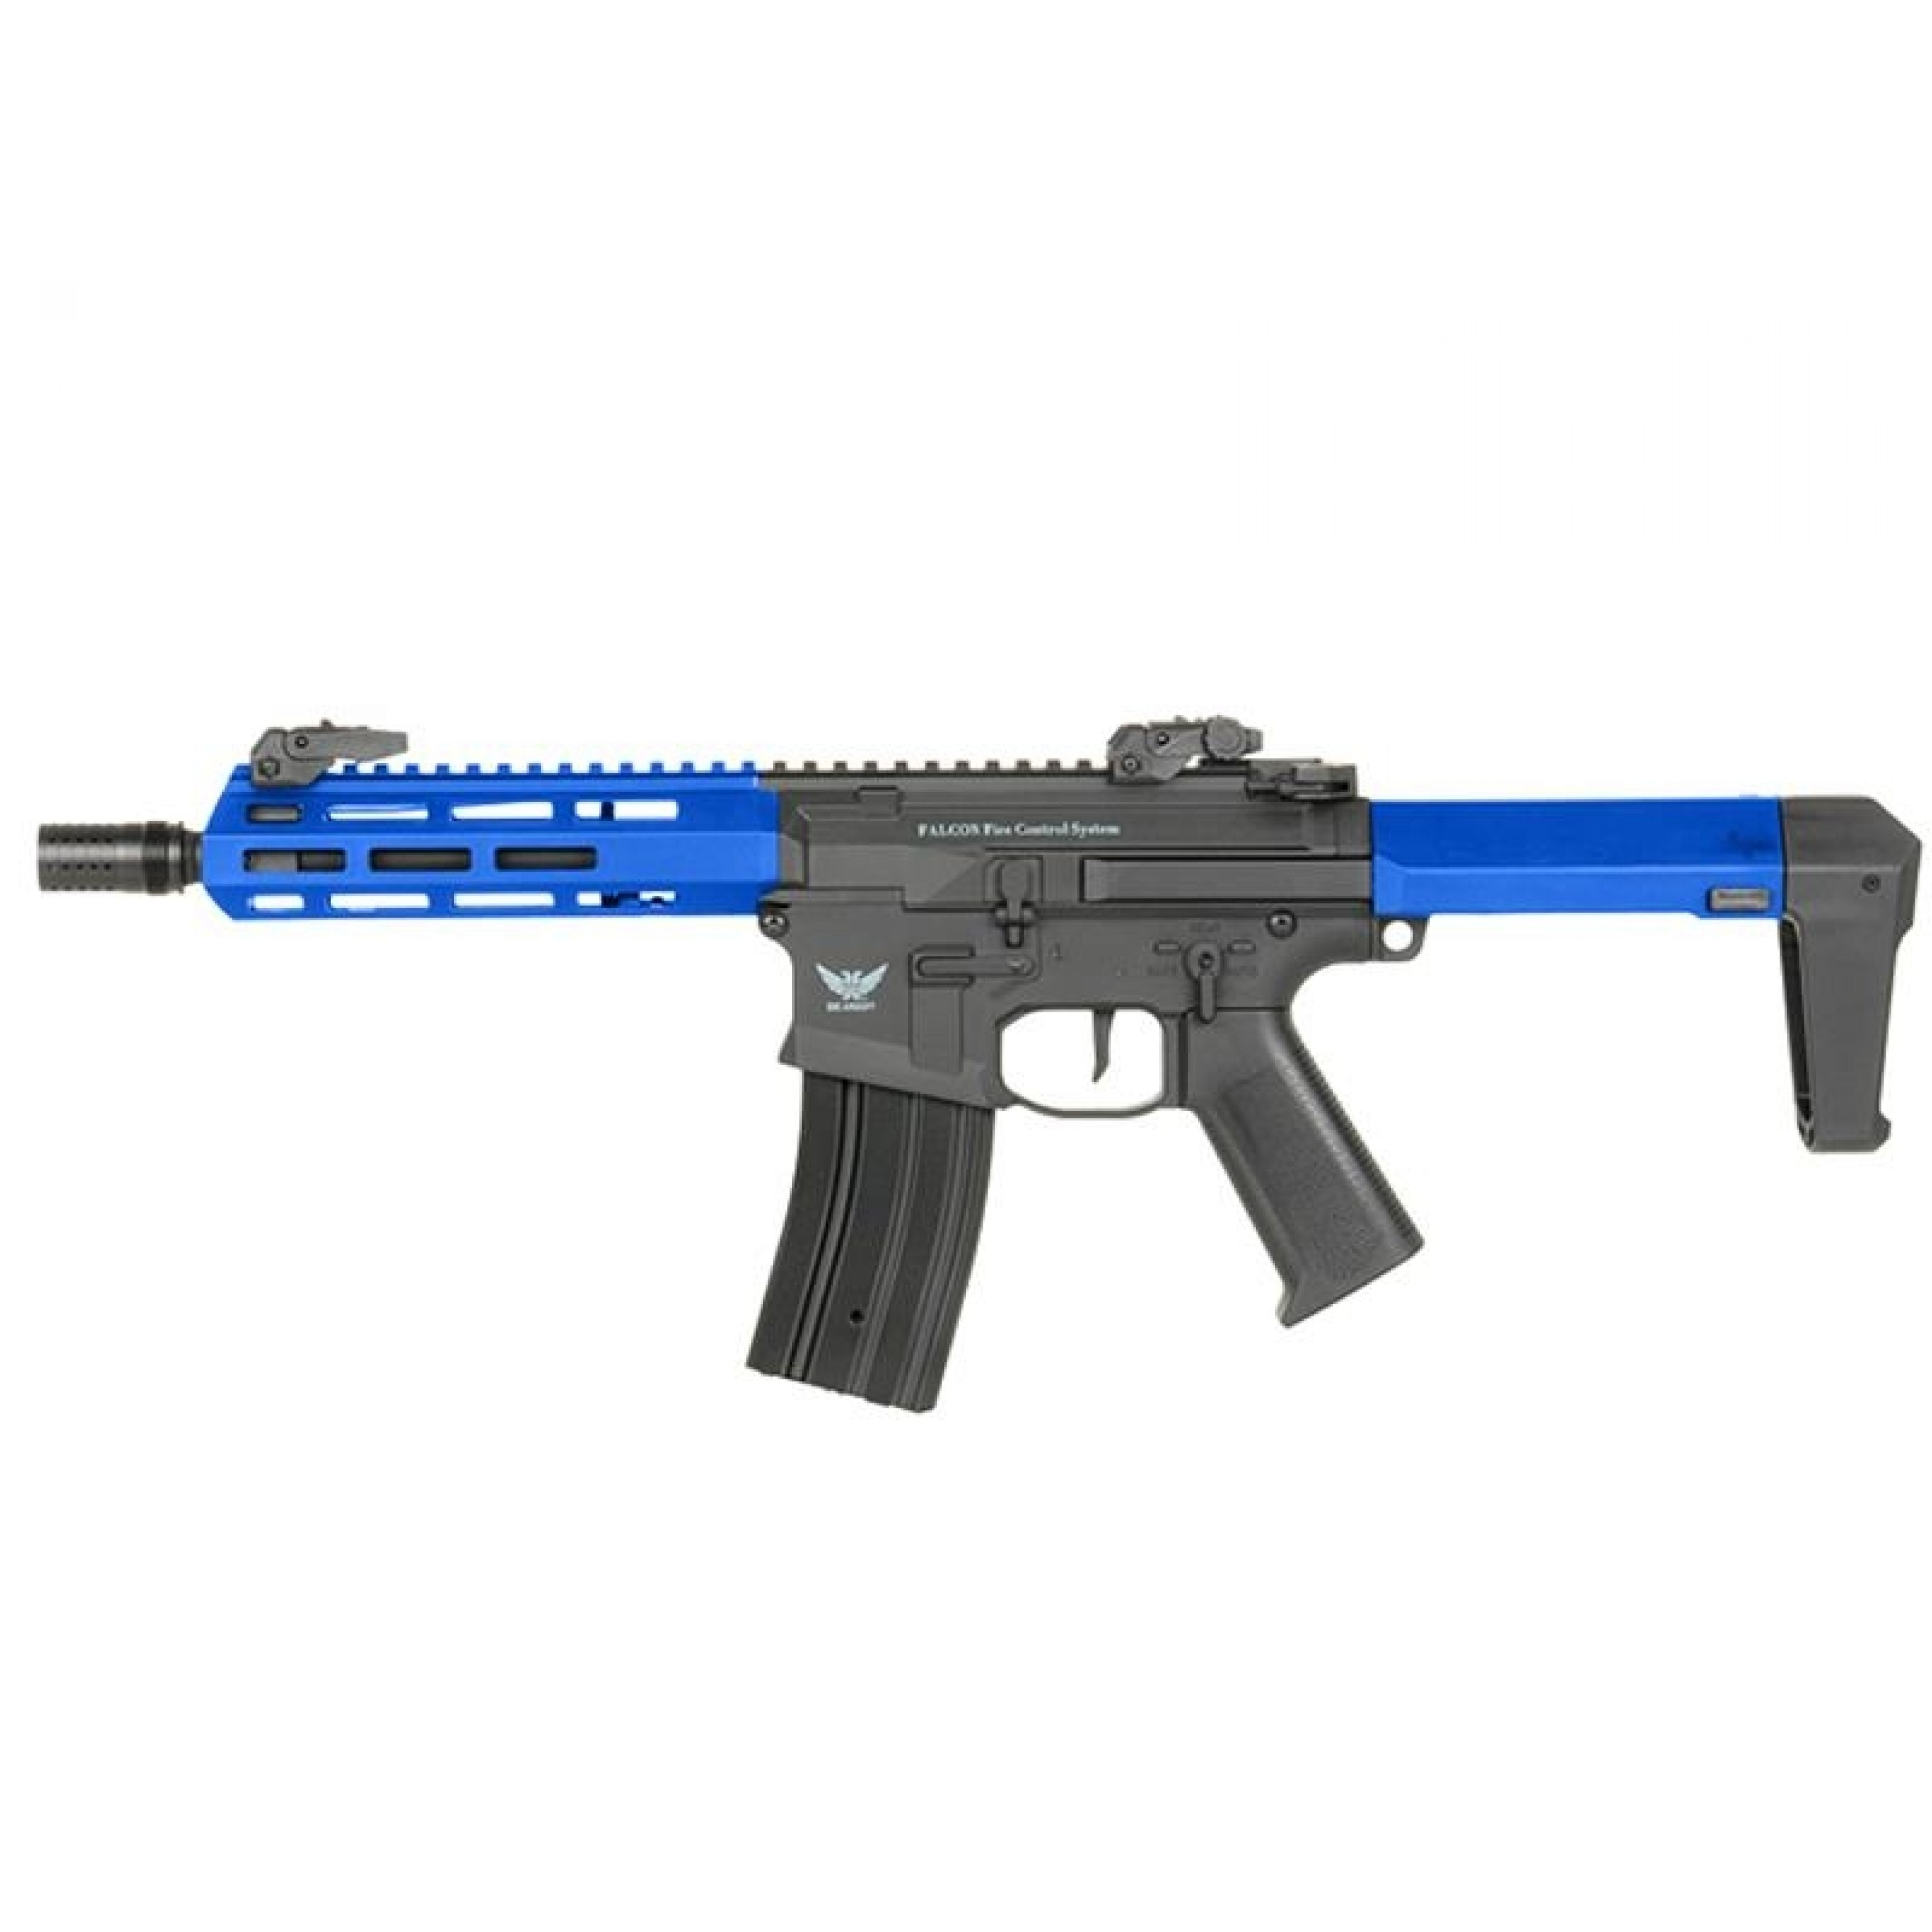 Double Eagle M904 AR15/M4 with Falcon Fire Control System (Blue - M904G)